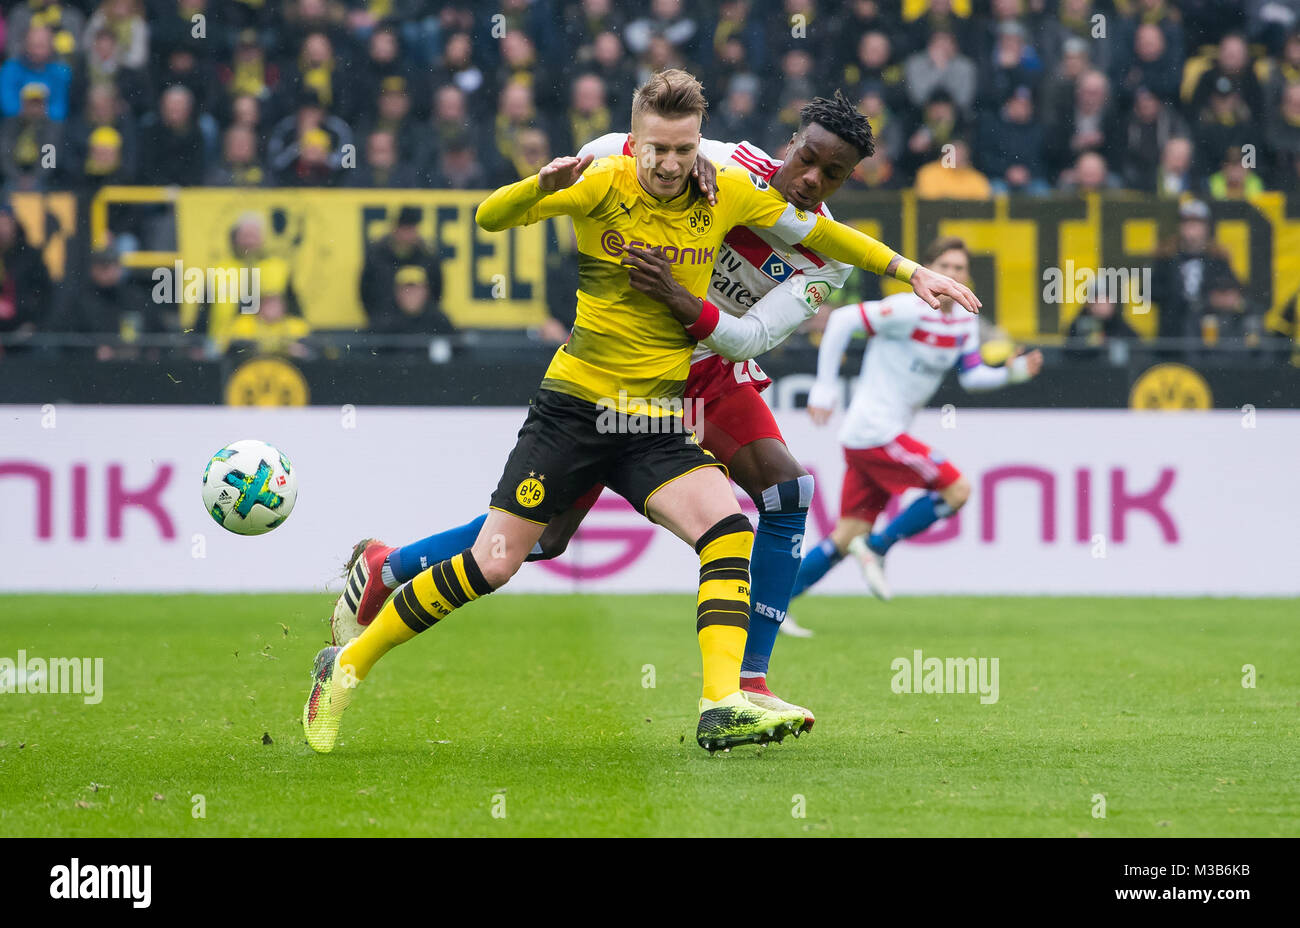 Dortmund, Germany. 10th Feb, 2018. Dortmund's Marco Reus (L) fights for the ball against Hamburg's Gideon - Stock Image